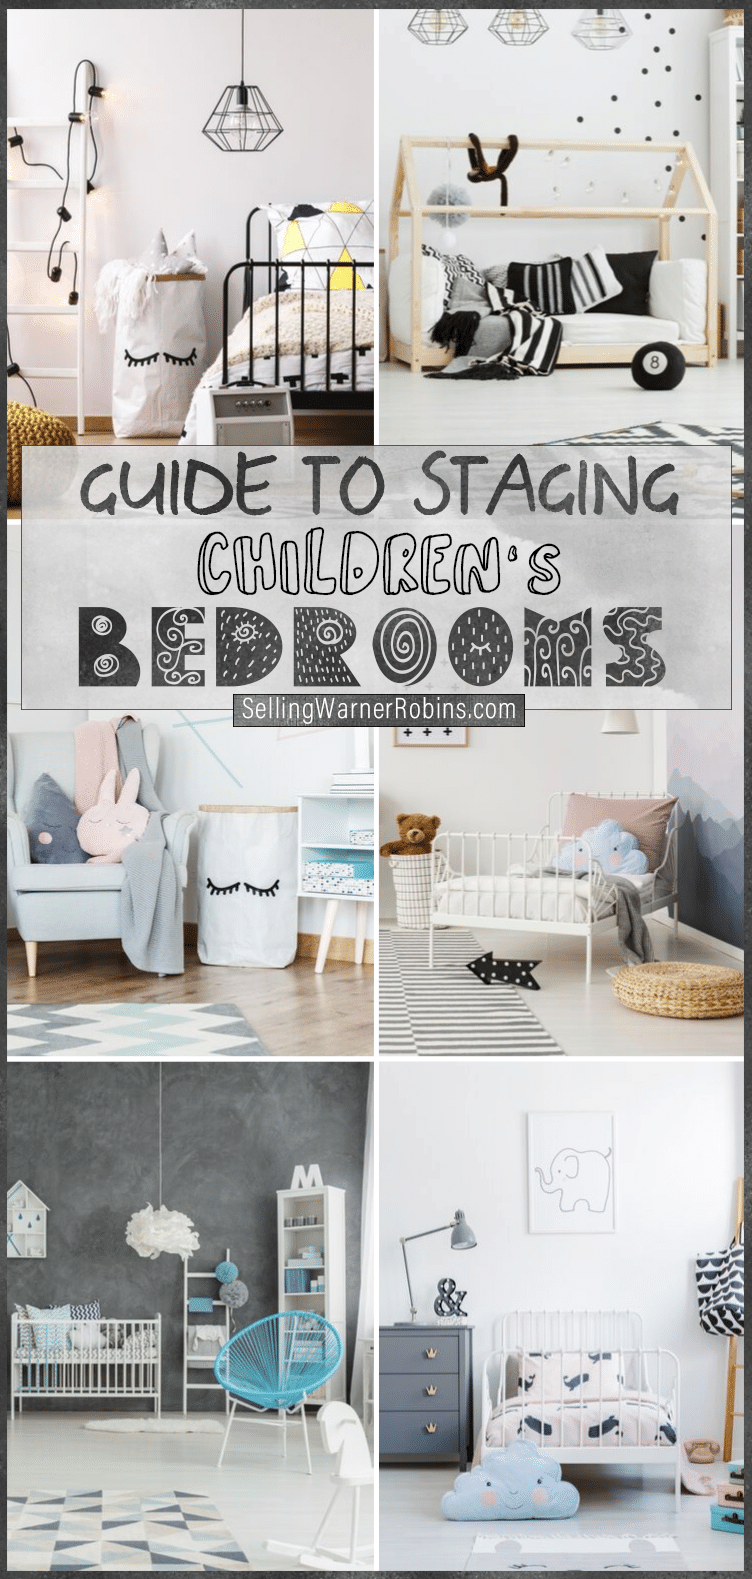 Guide to Staging Children's Rooms